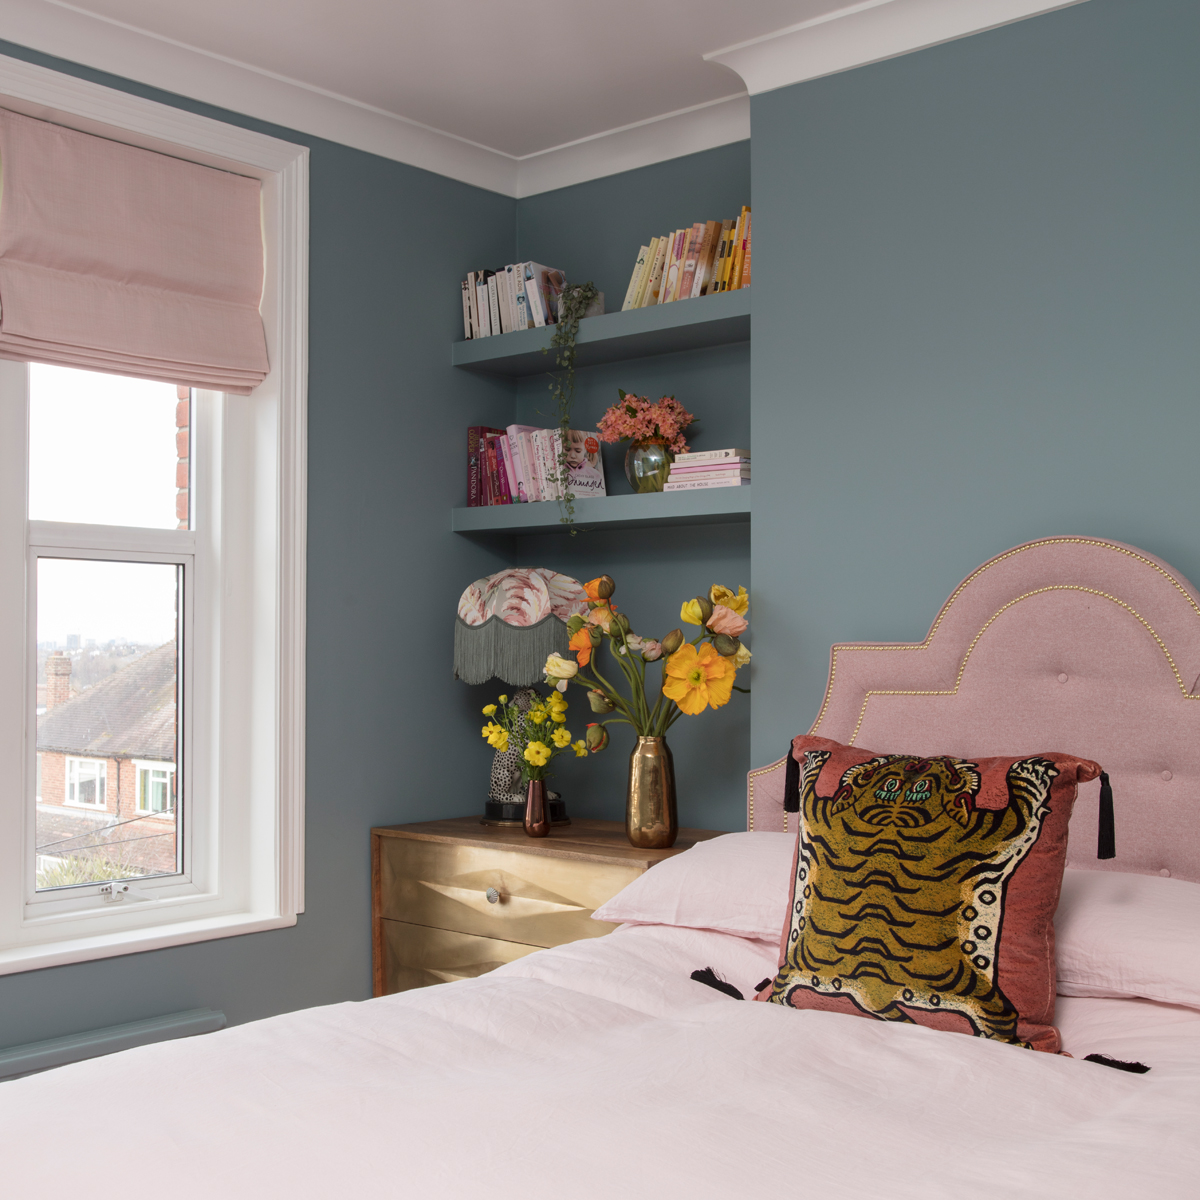 Pink Hillarys Clarence Chemise roman blinds